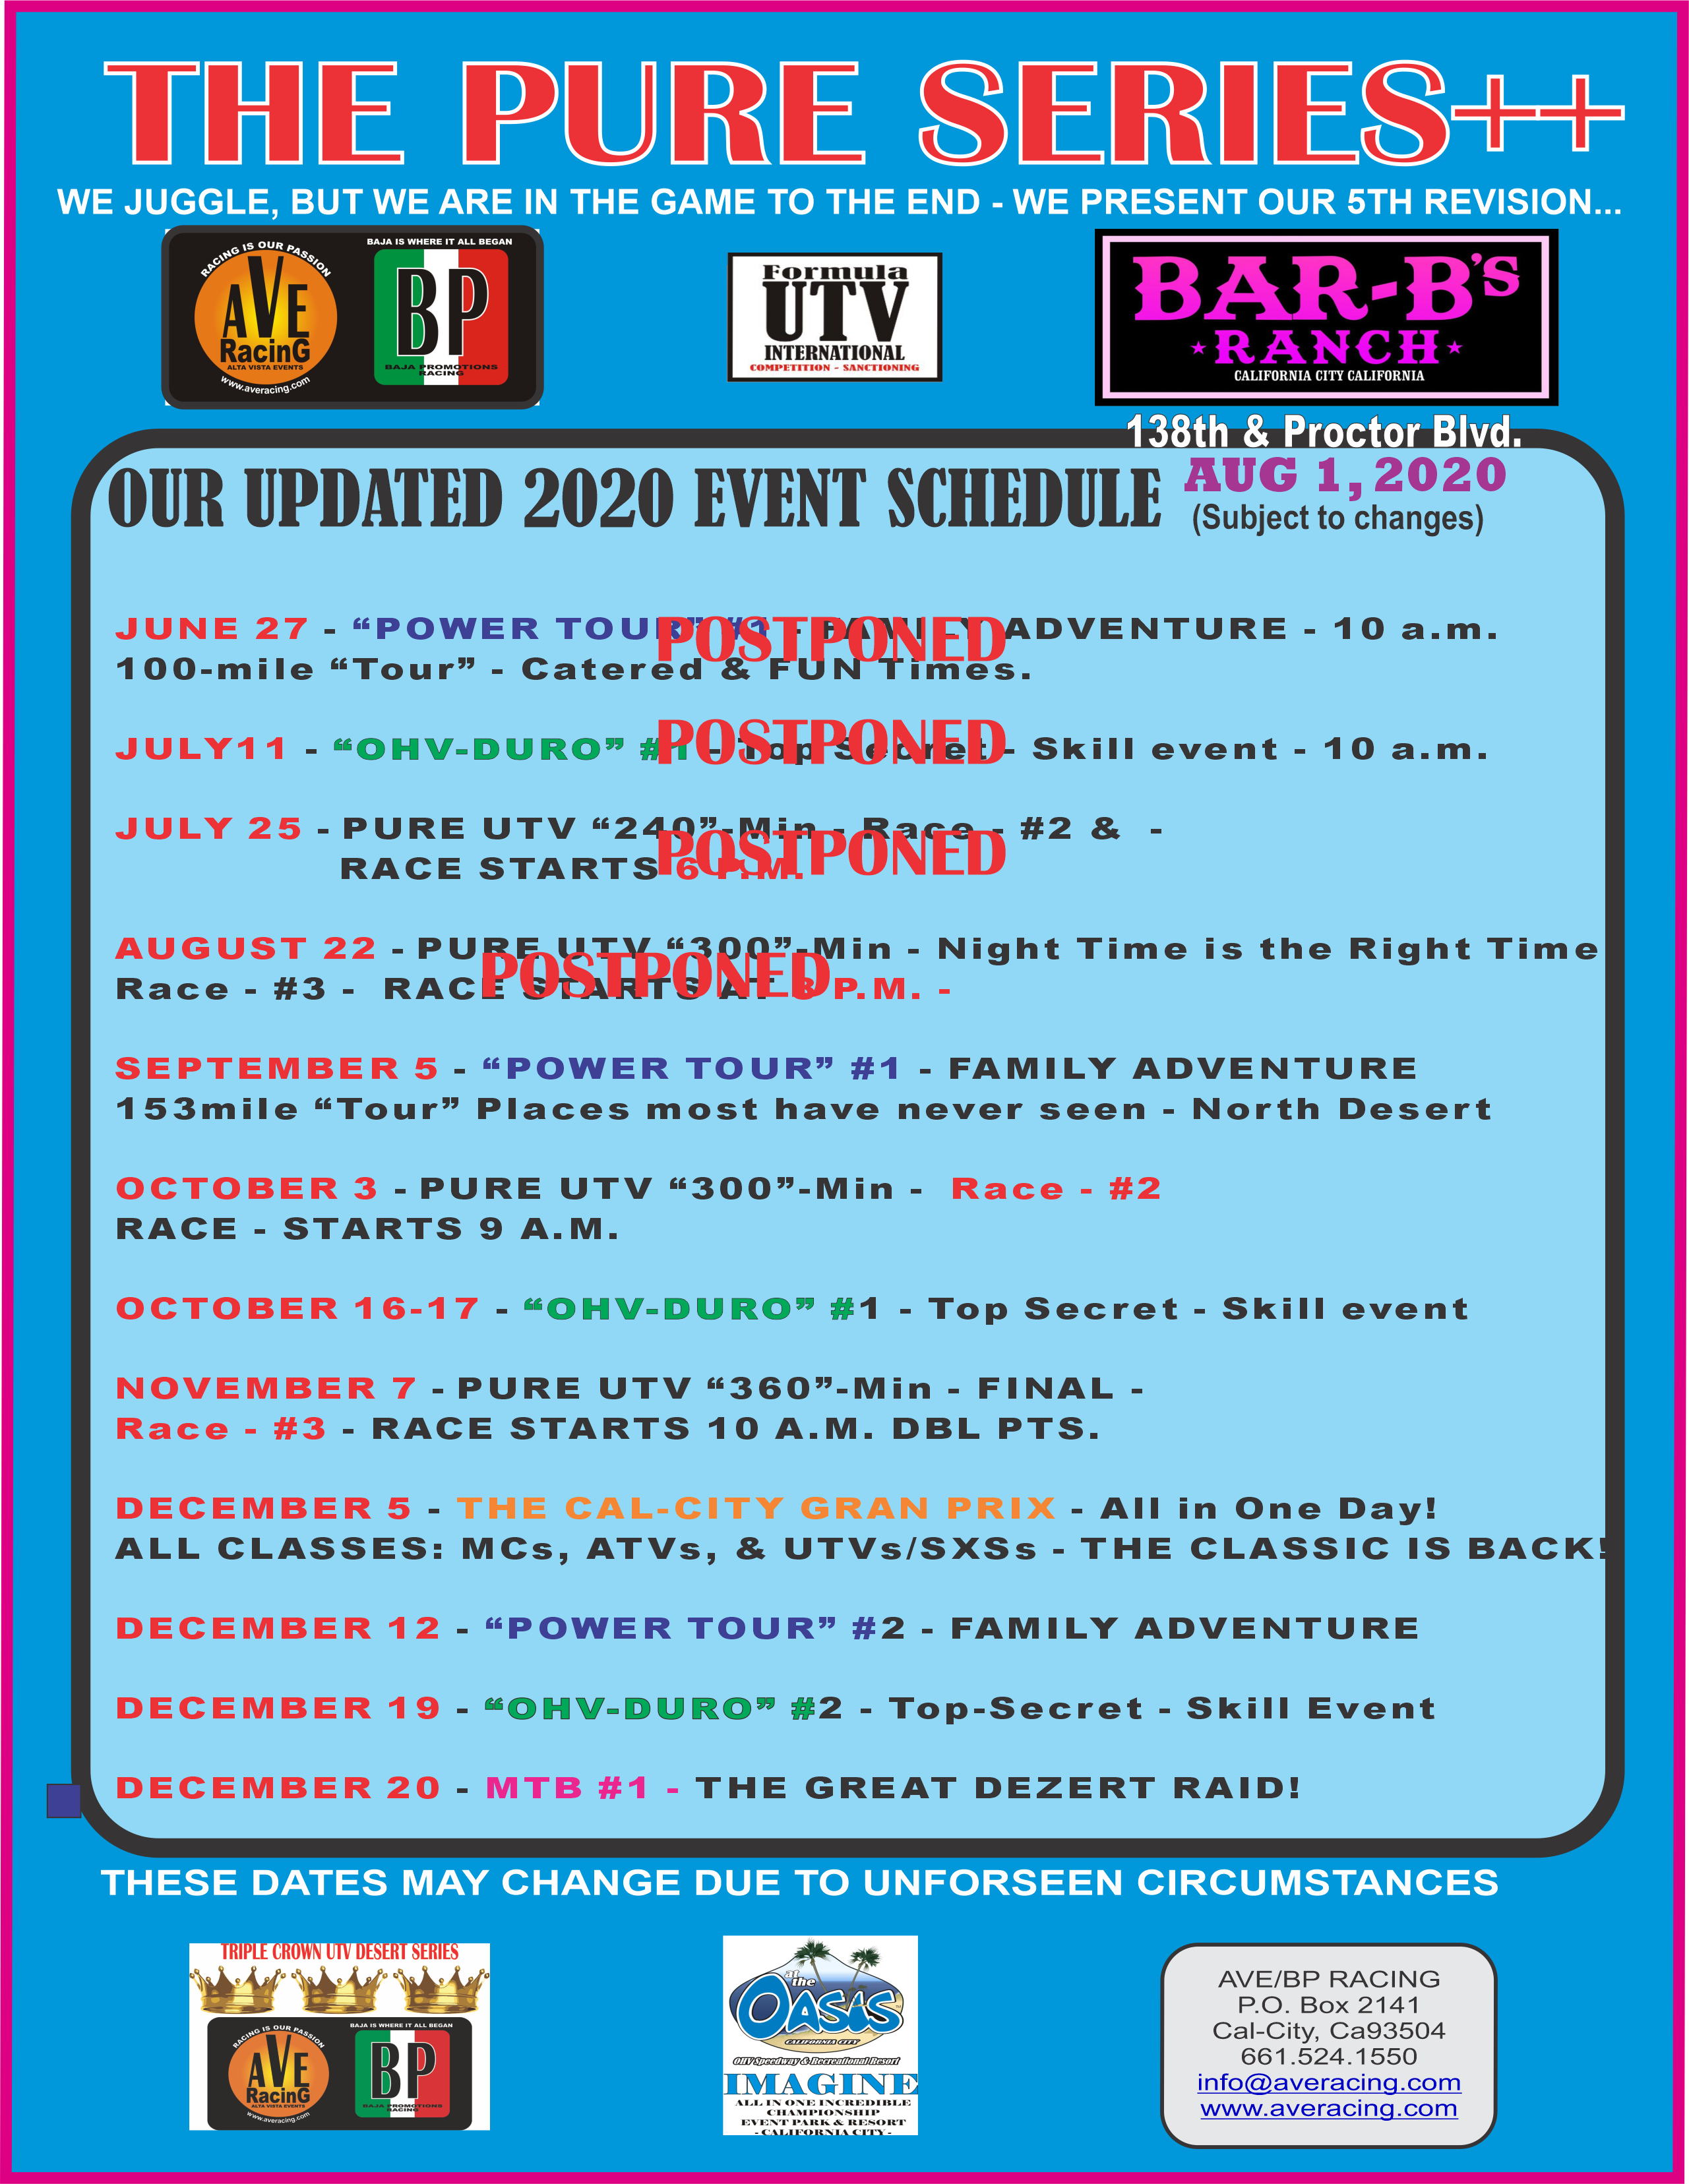 20-REVISED-5X-ALL-EVENT-CALENDAR-AUG1.png